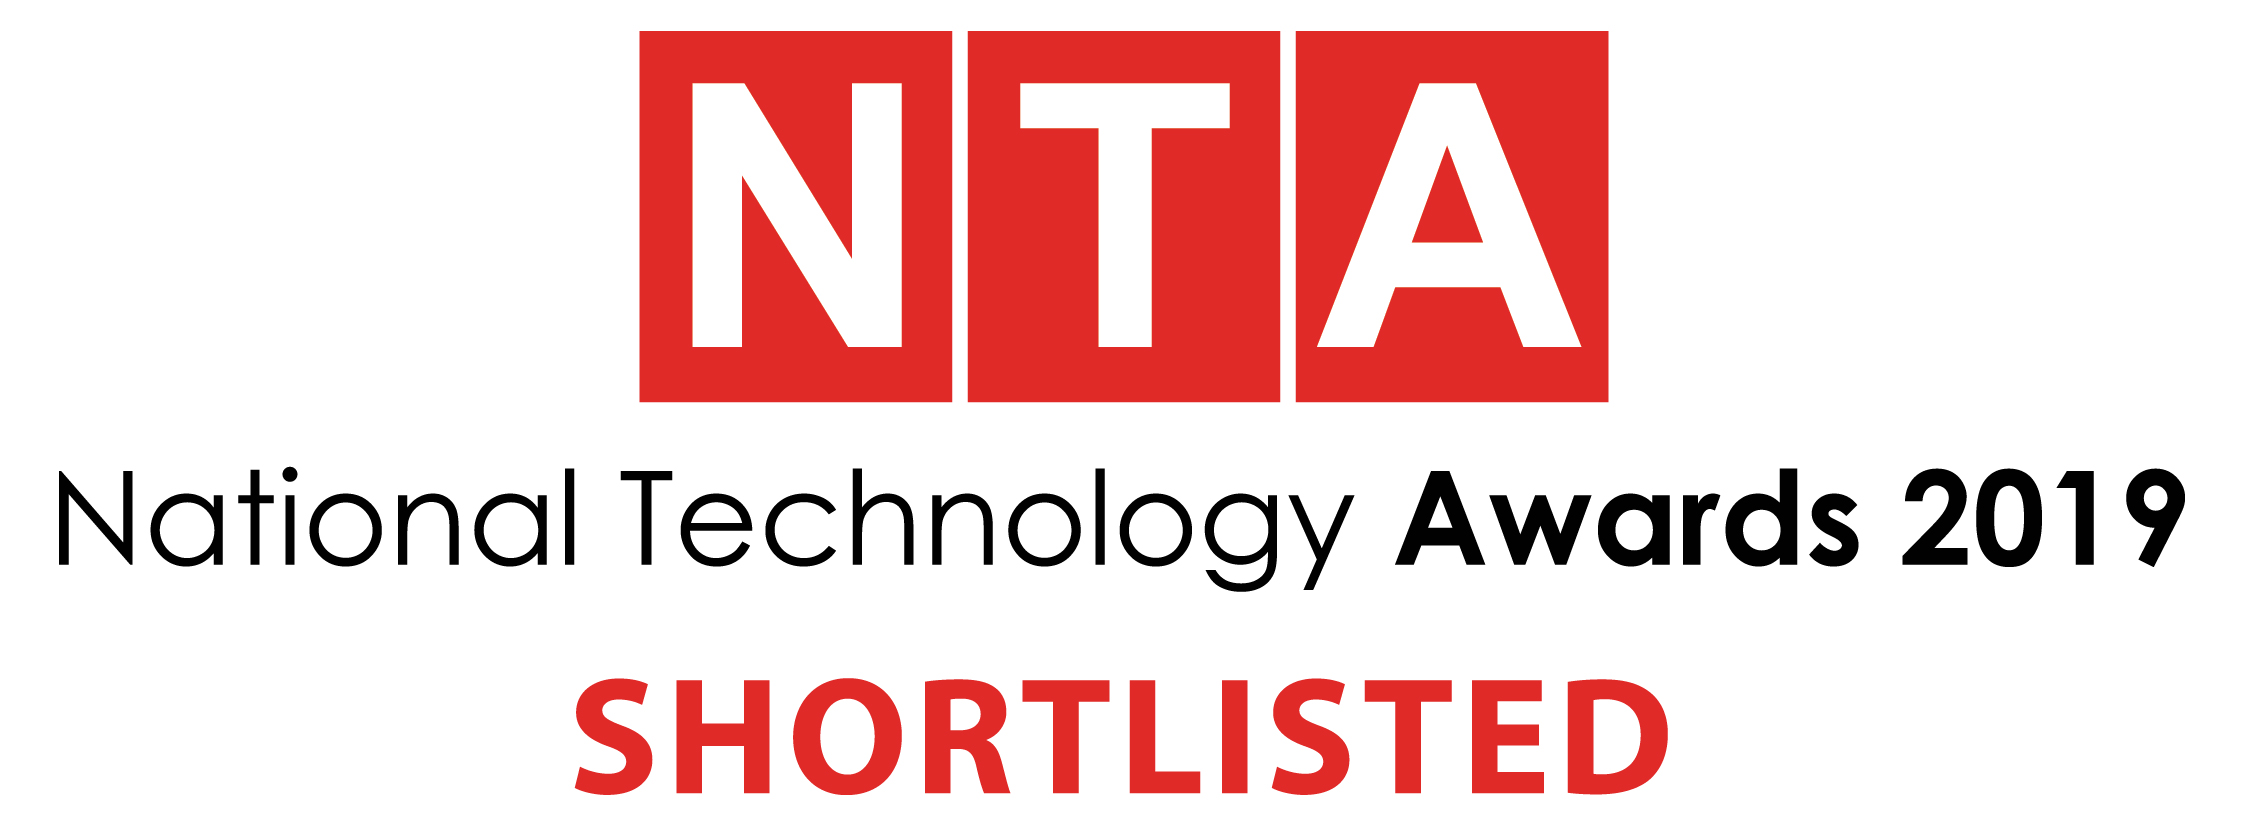 National Technology Awards 2019 shortlisted logo